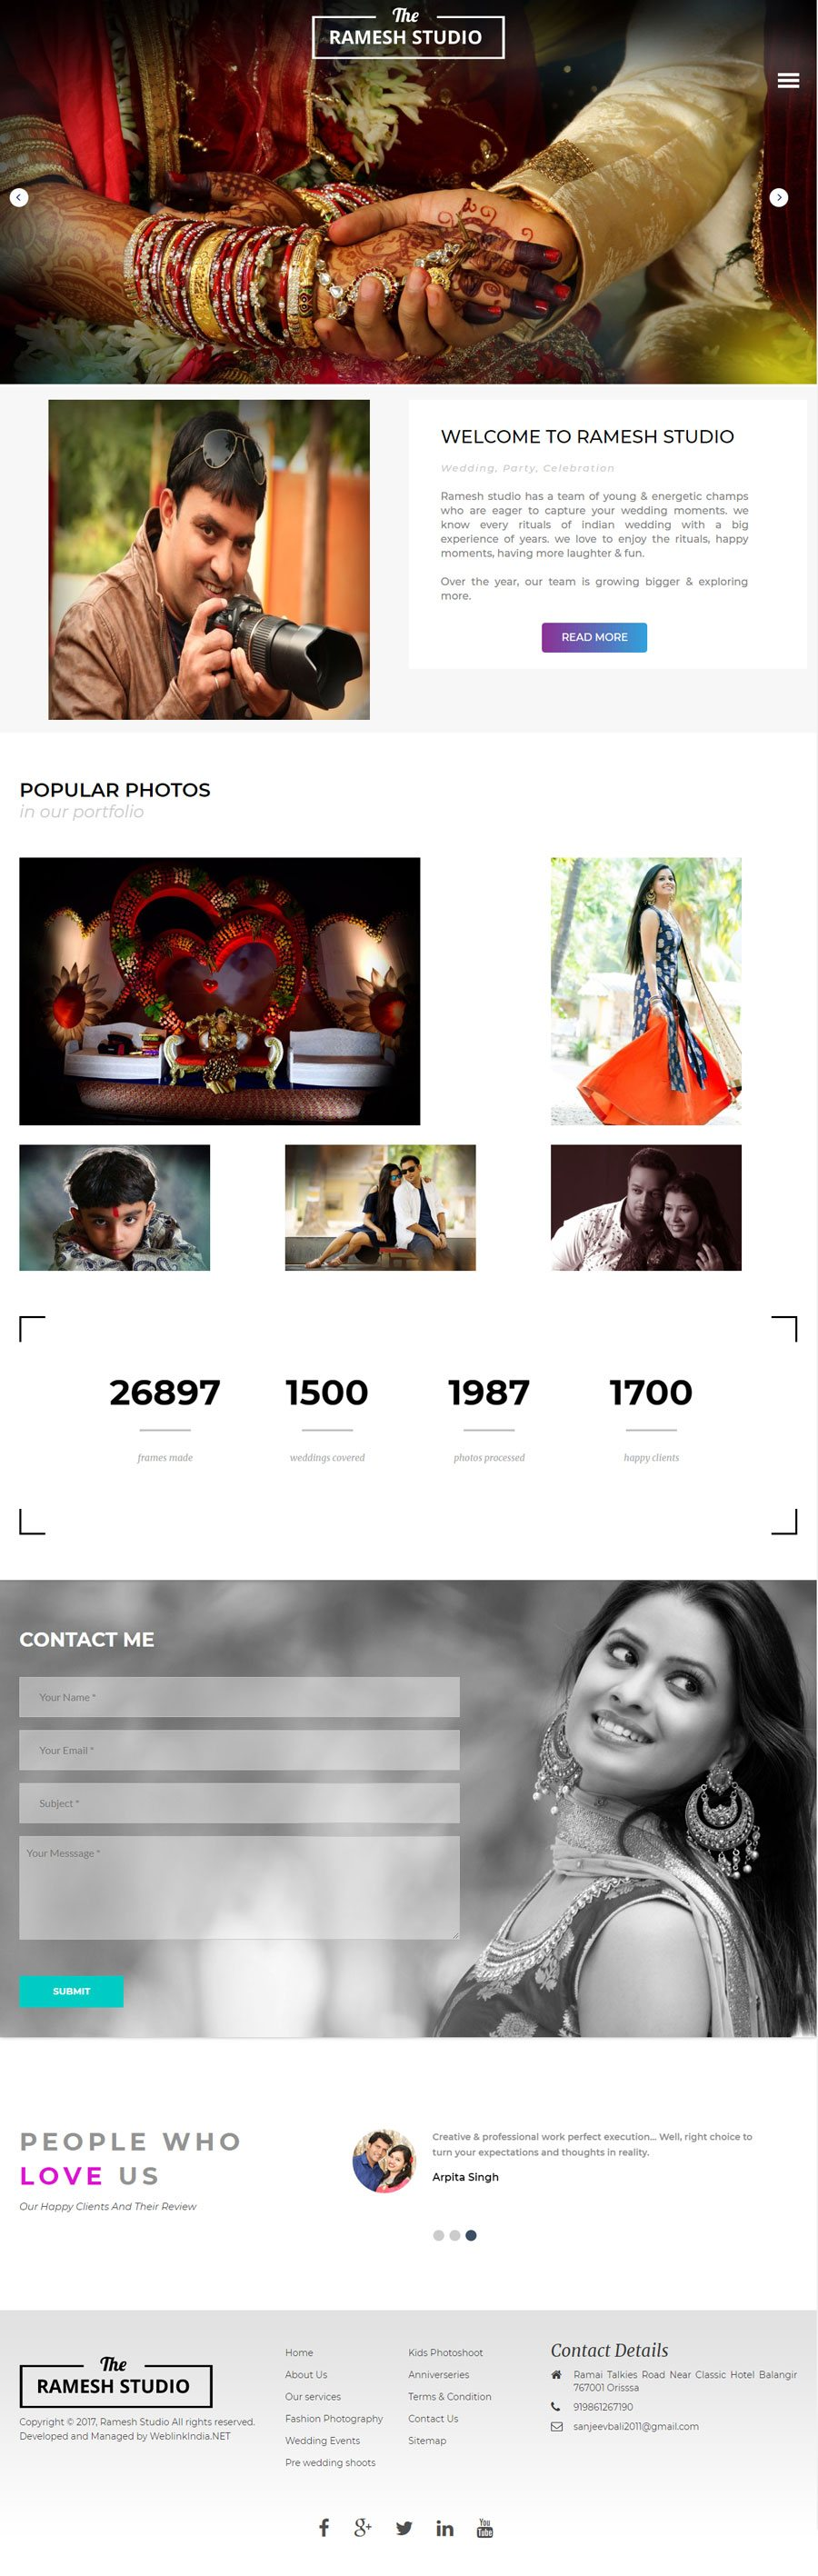 Ramesh Studio India Web Design